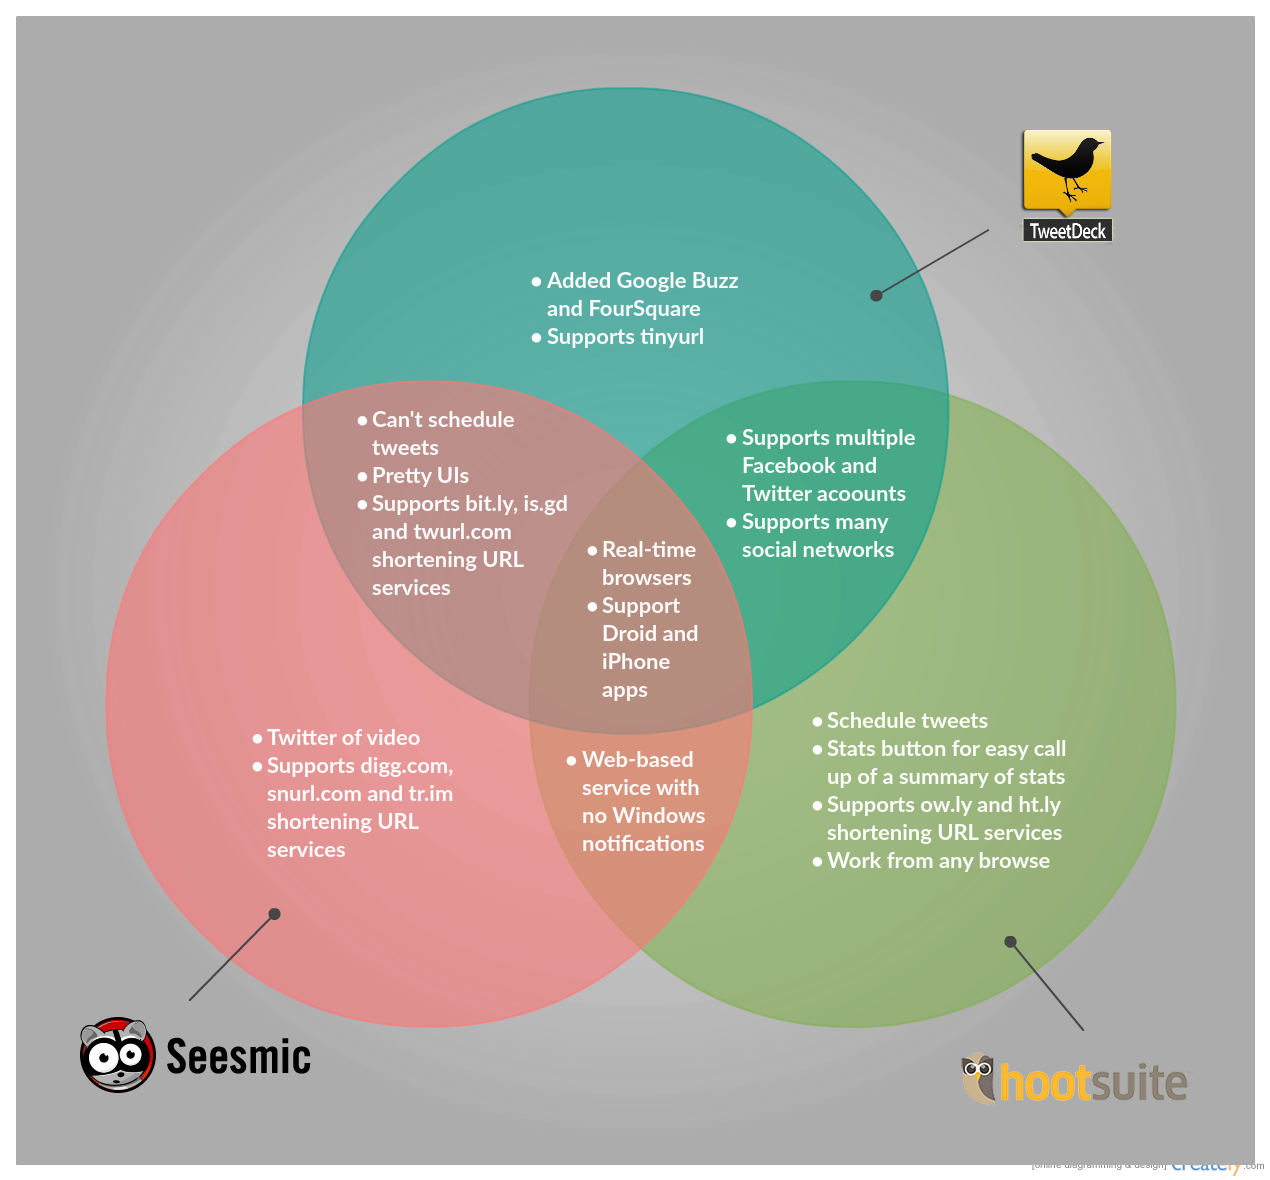 Venn diagram templates editable online or download for free venn diagram template on different twitter tools pooptronica Images